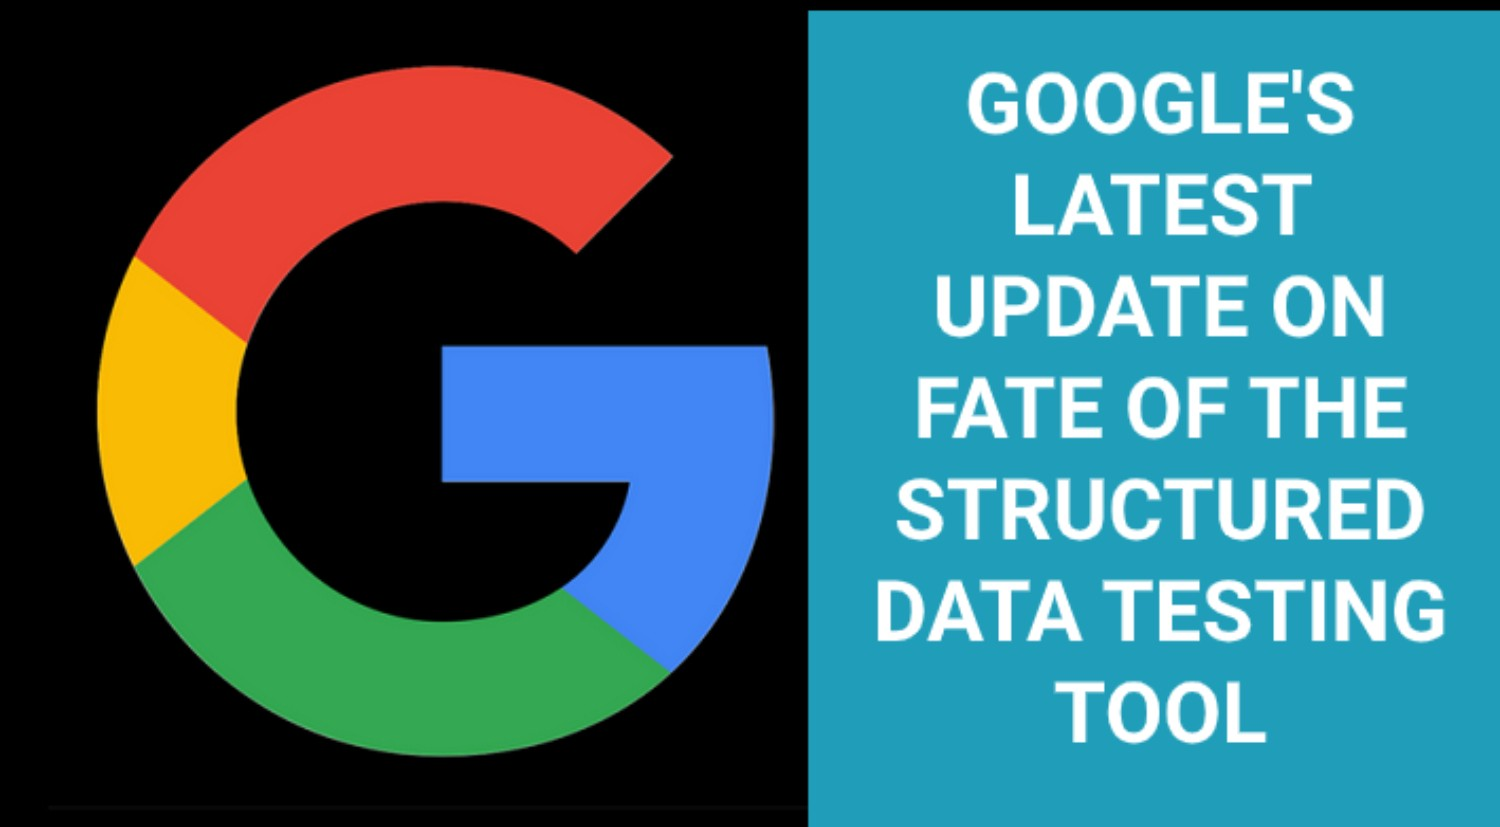 Google's latest update on fate of Structured Data Testing Tool